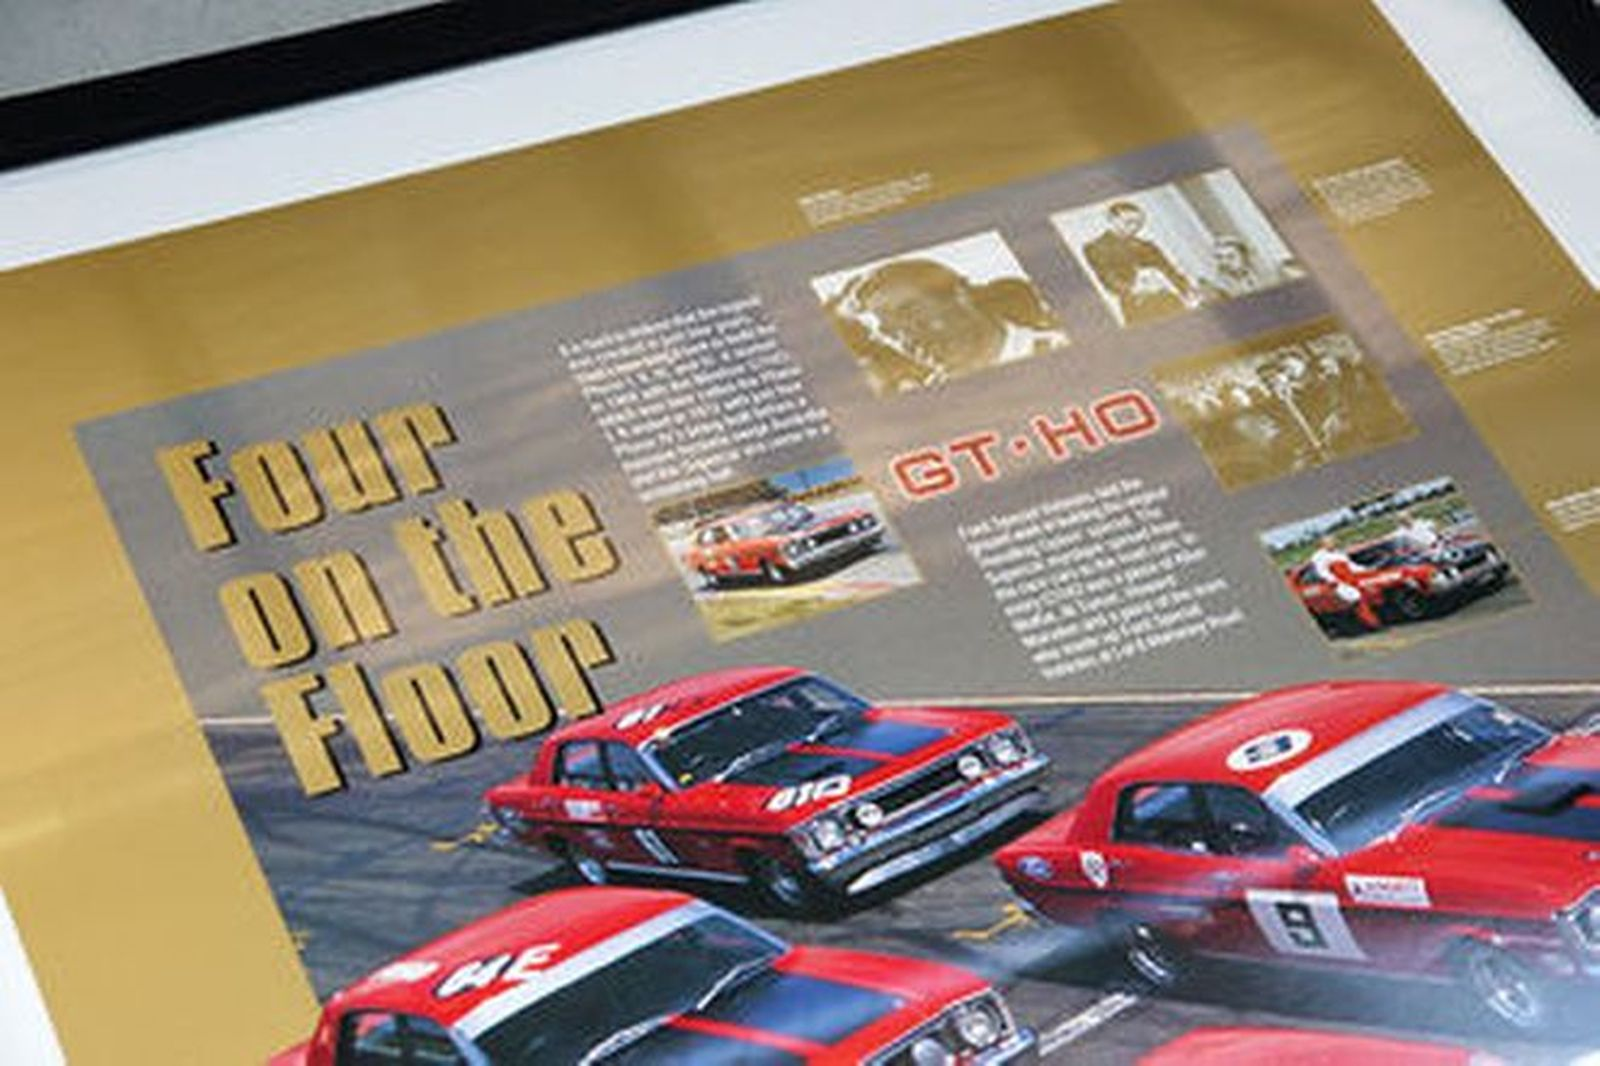 Framed Signed Poster - 'Four on the Floor' GT-HO Signed by Allan Moffat (105 x 75cm)